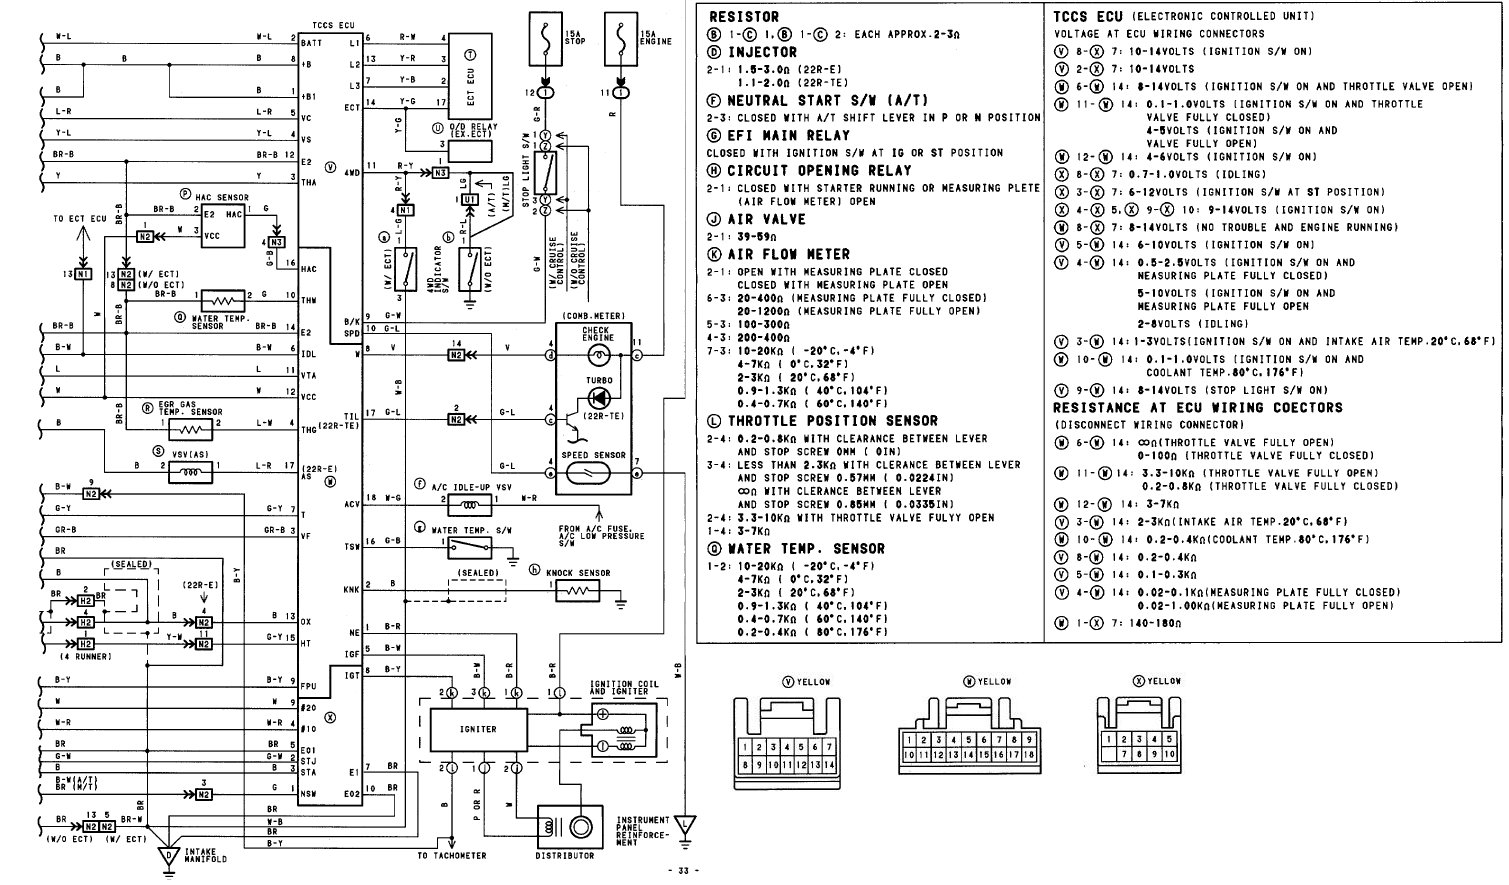 1986 toyota wire harness   24 wiring diagram images